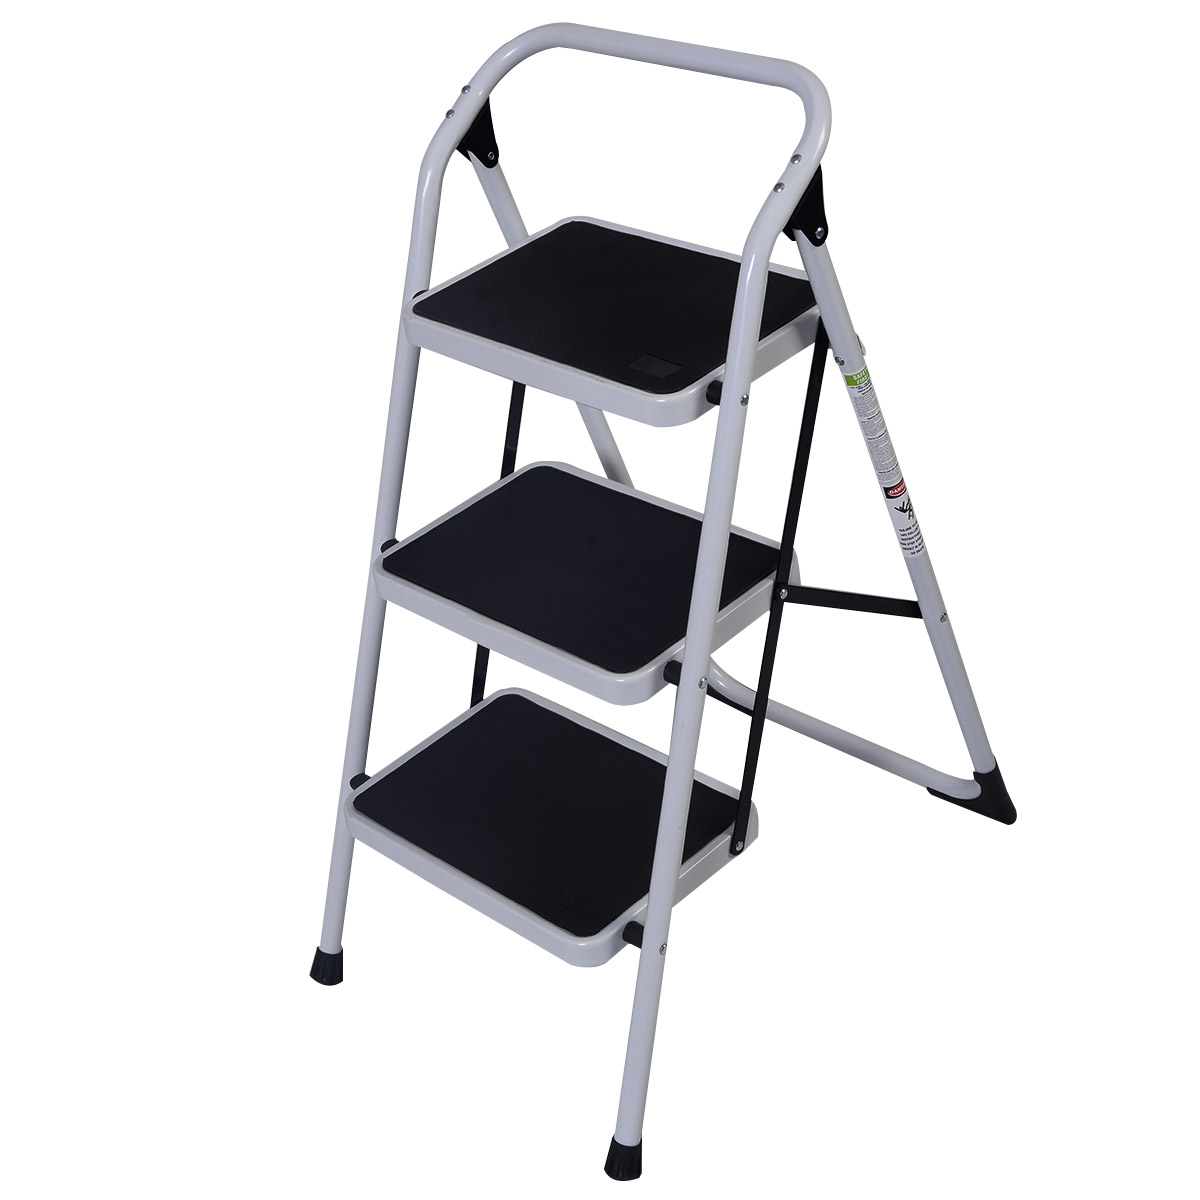 Protable 3 Step Ladder Folding Non Slip Safety Tread Heavy